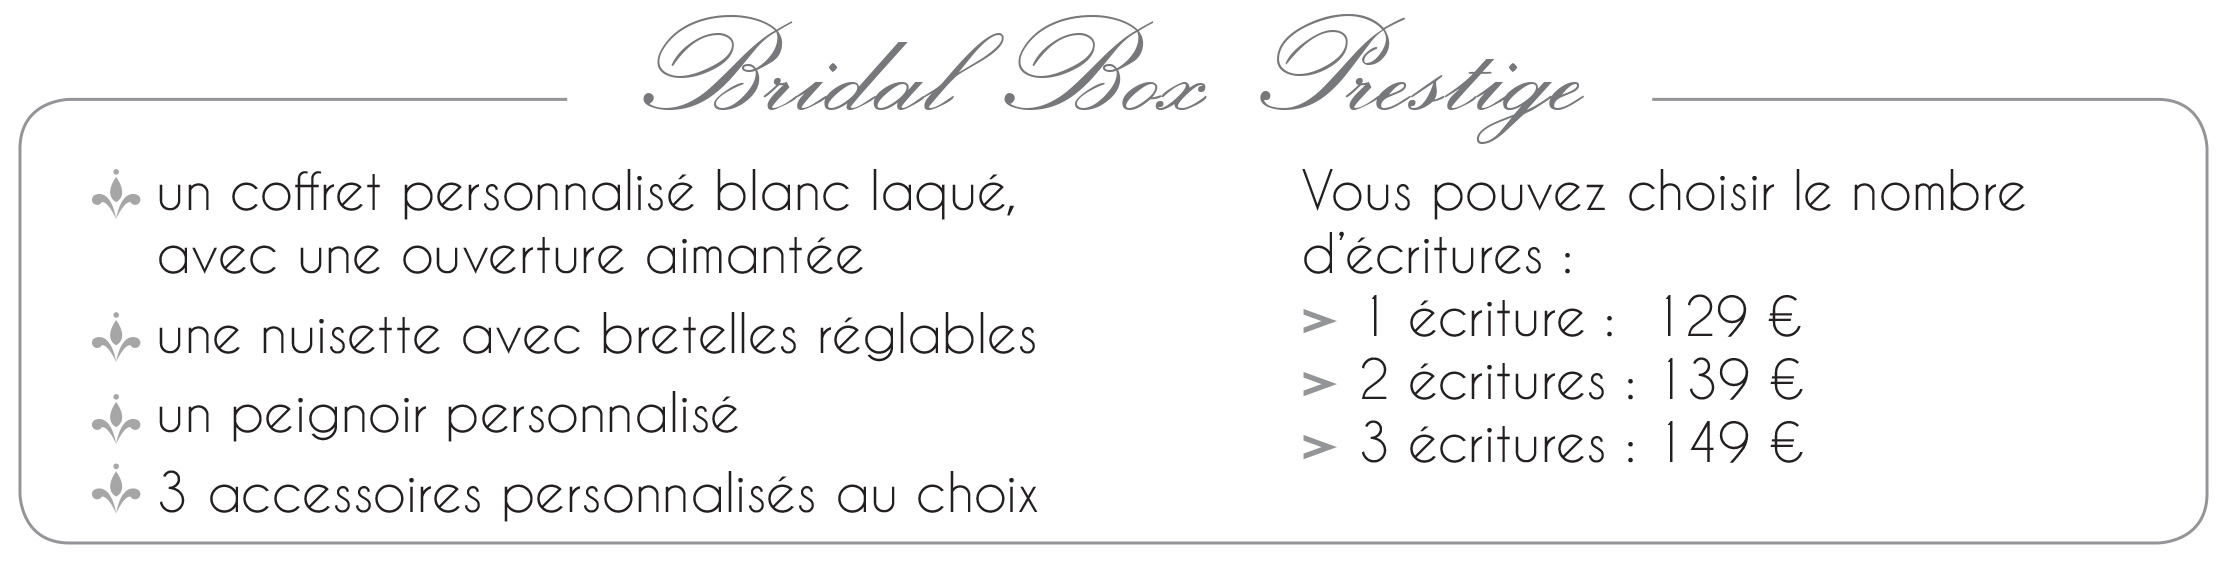 Bridal-Box-prestige